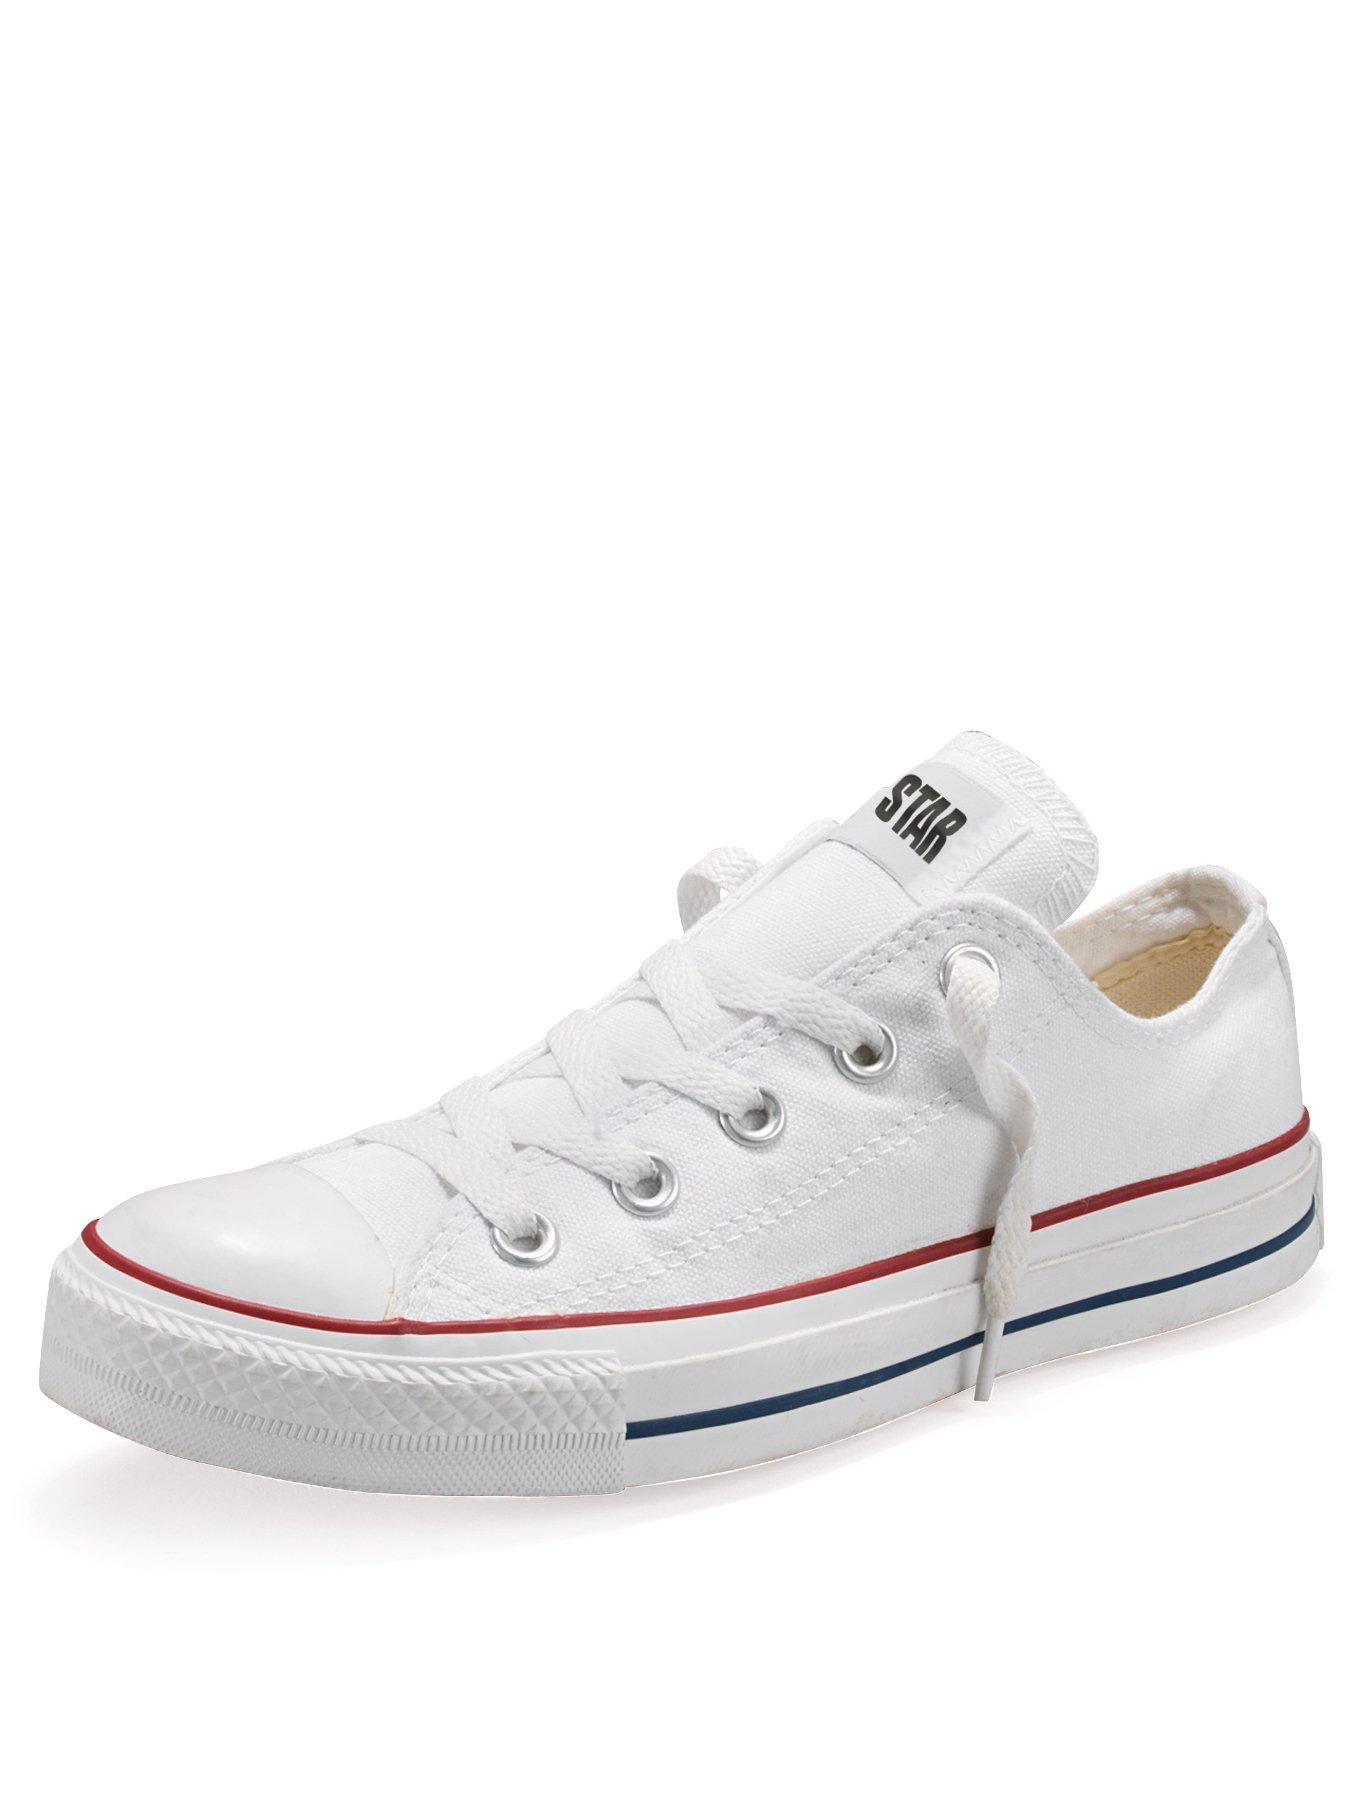 childrens white converse